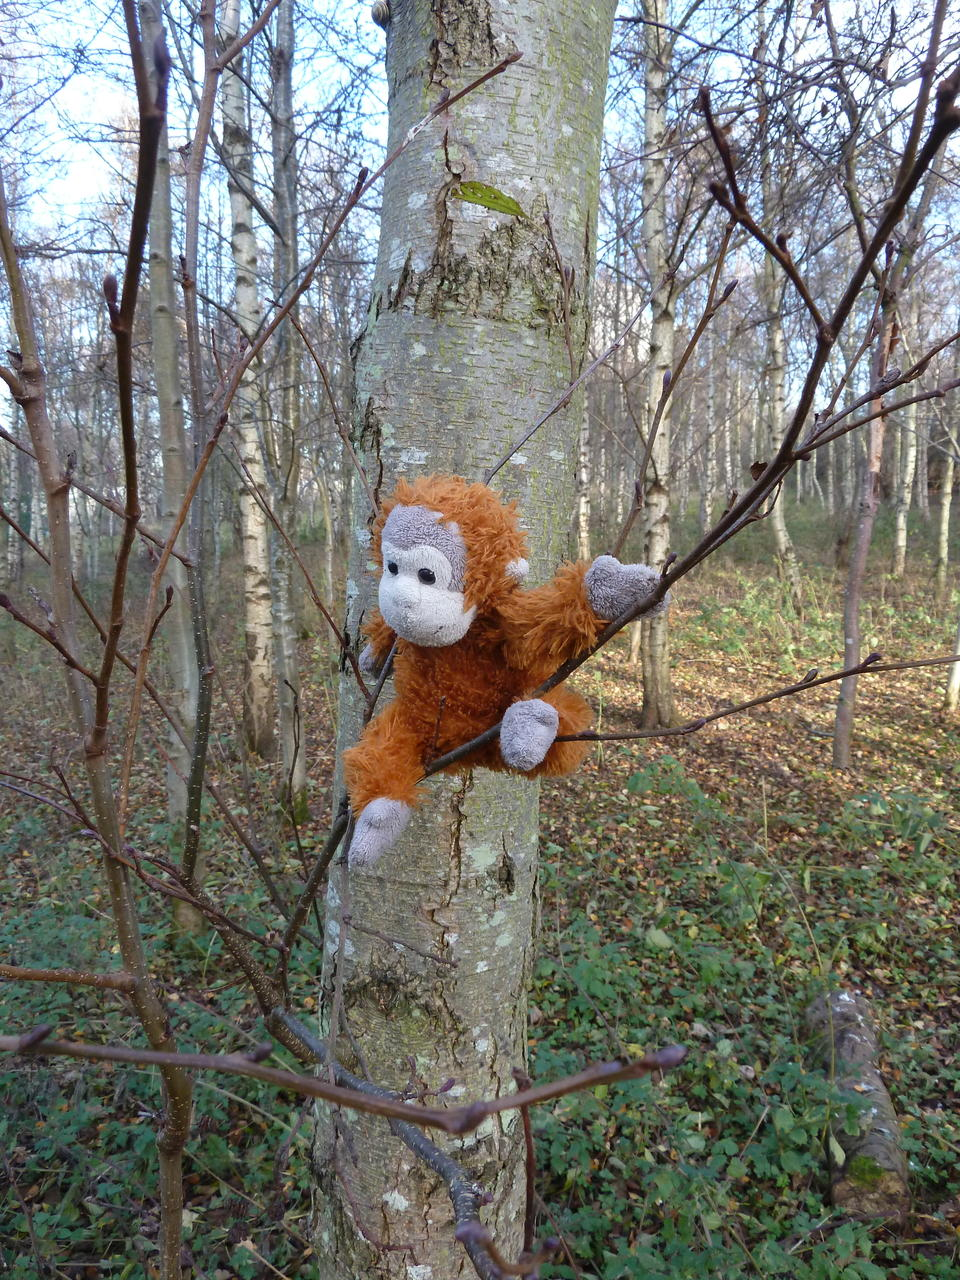 Pongo climbing a different tree